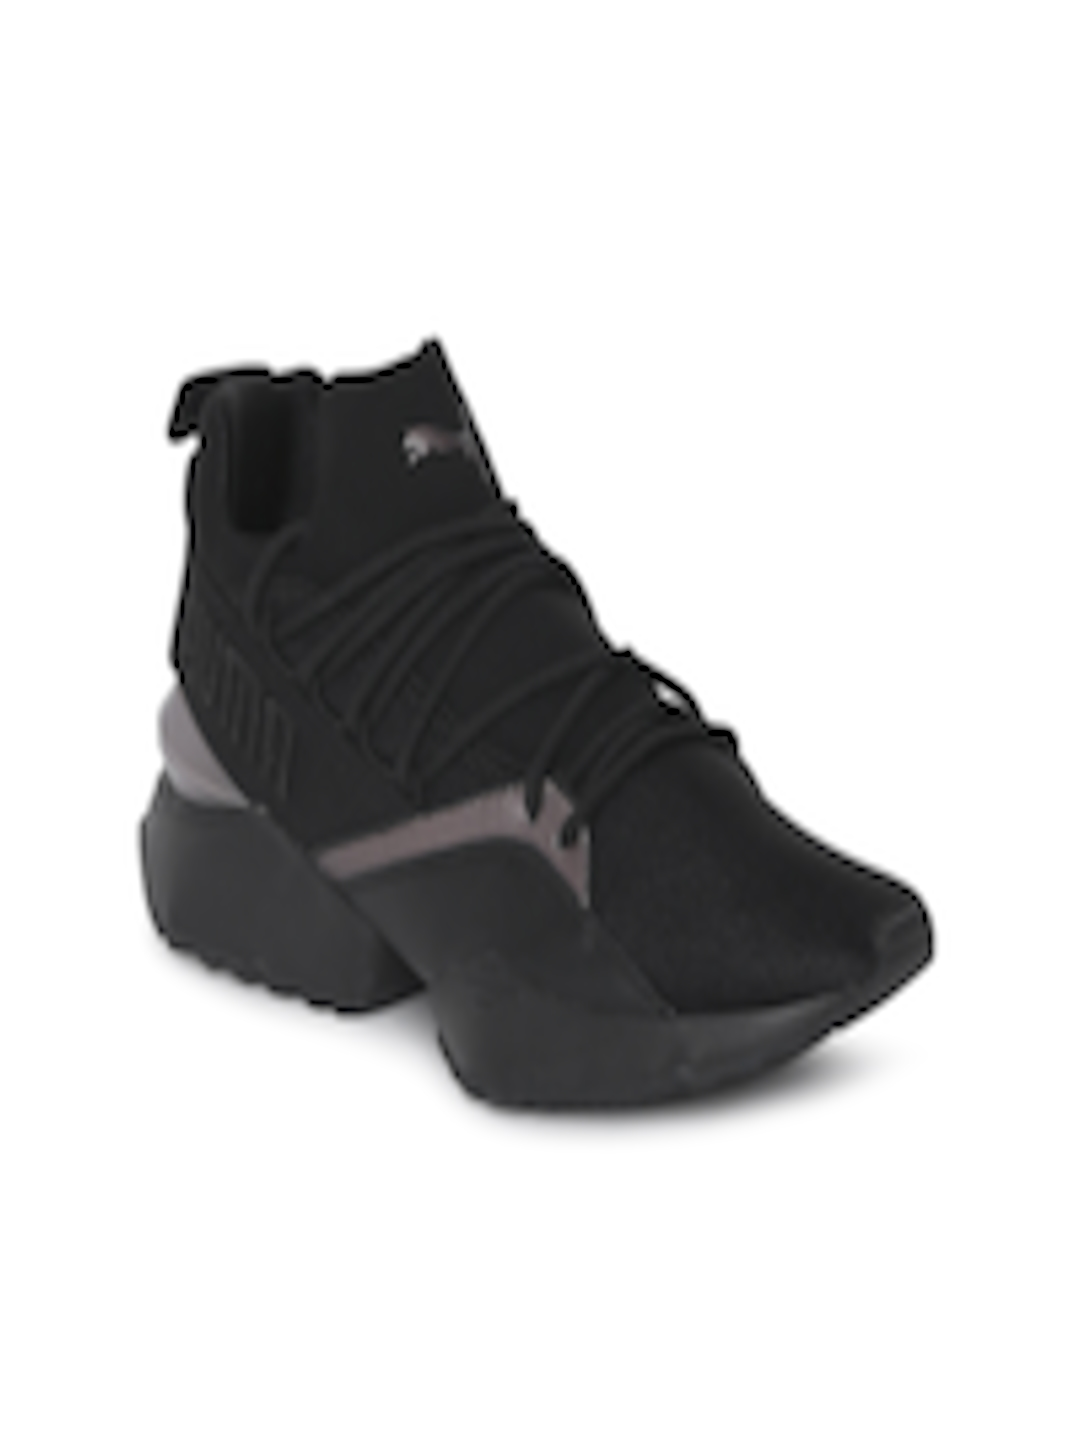 ff64ed2ea2d3 Buy Puma Women Black Muse Maia Luxe Sneakers - Casual Shoes for Women  7141713